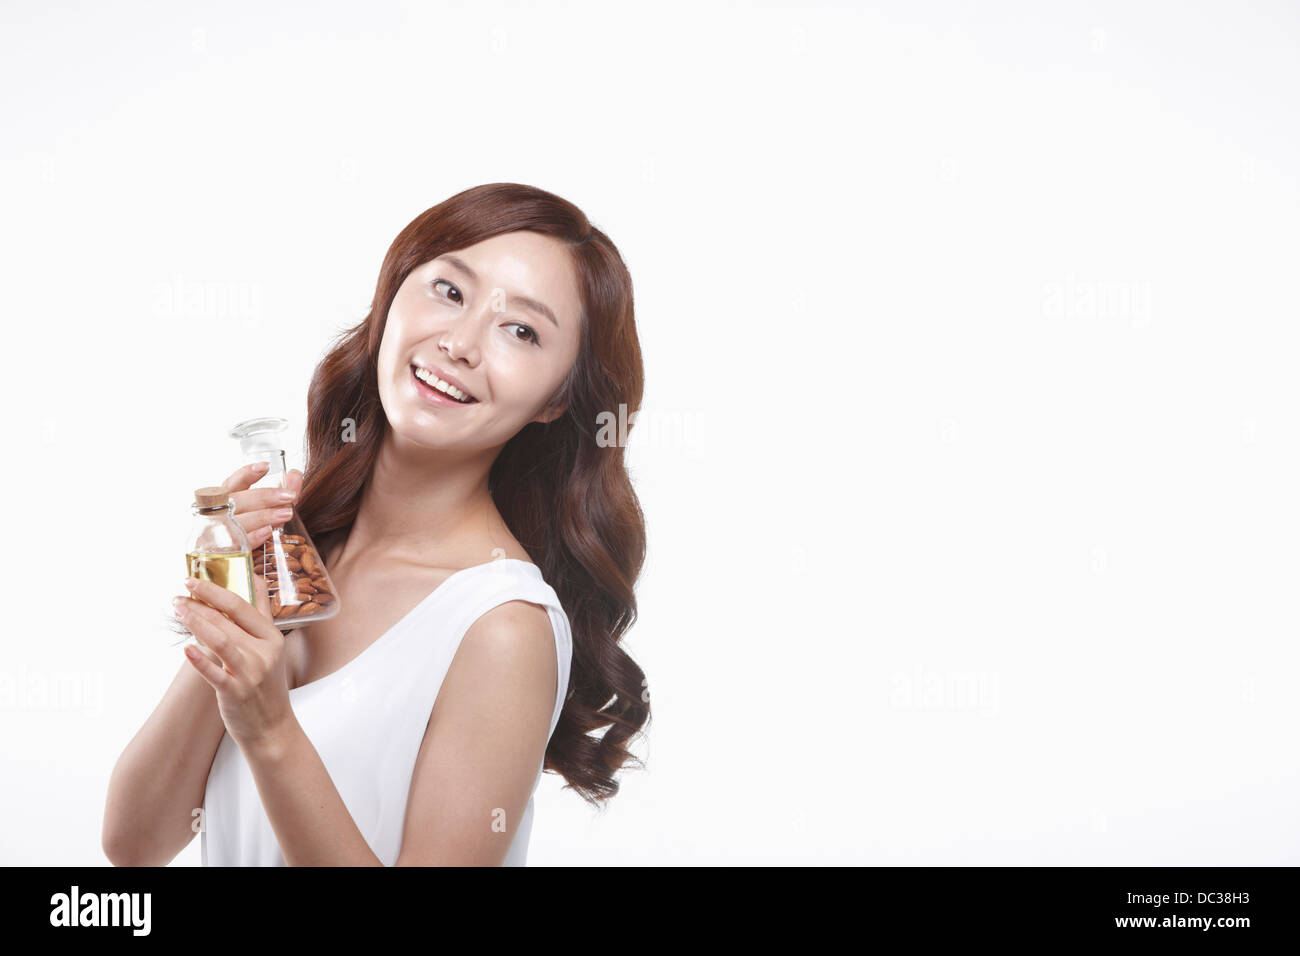 a lady in white dress holding a jar with nuts - Stock Image